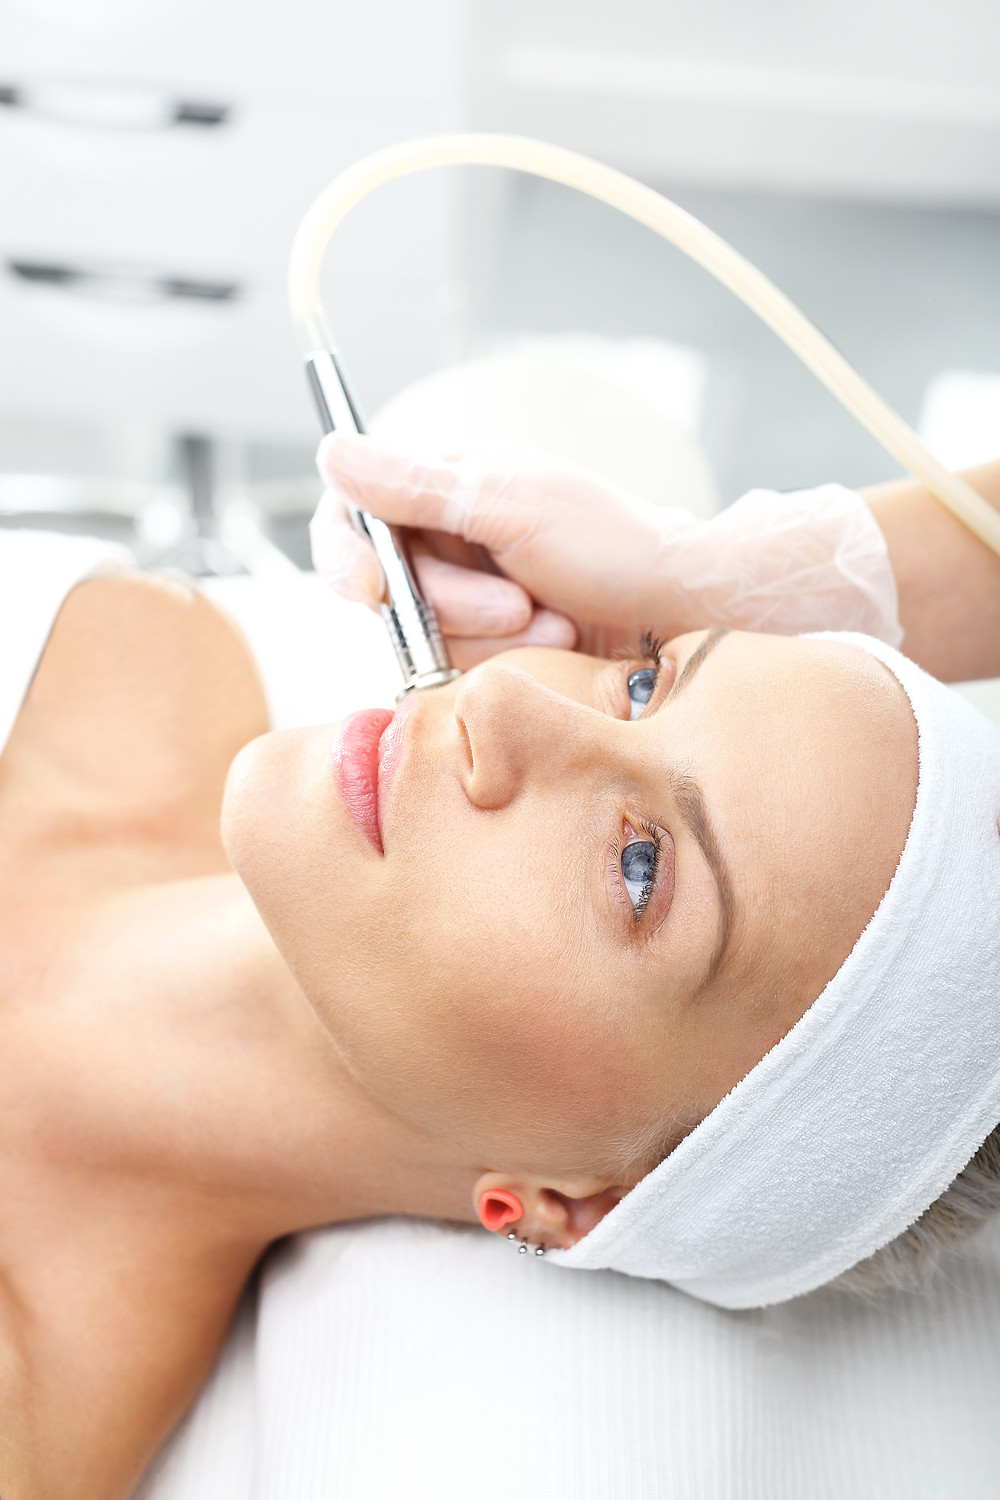 Microdermabrasion gently and effectively polishes and resurfaces the skin.